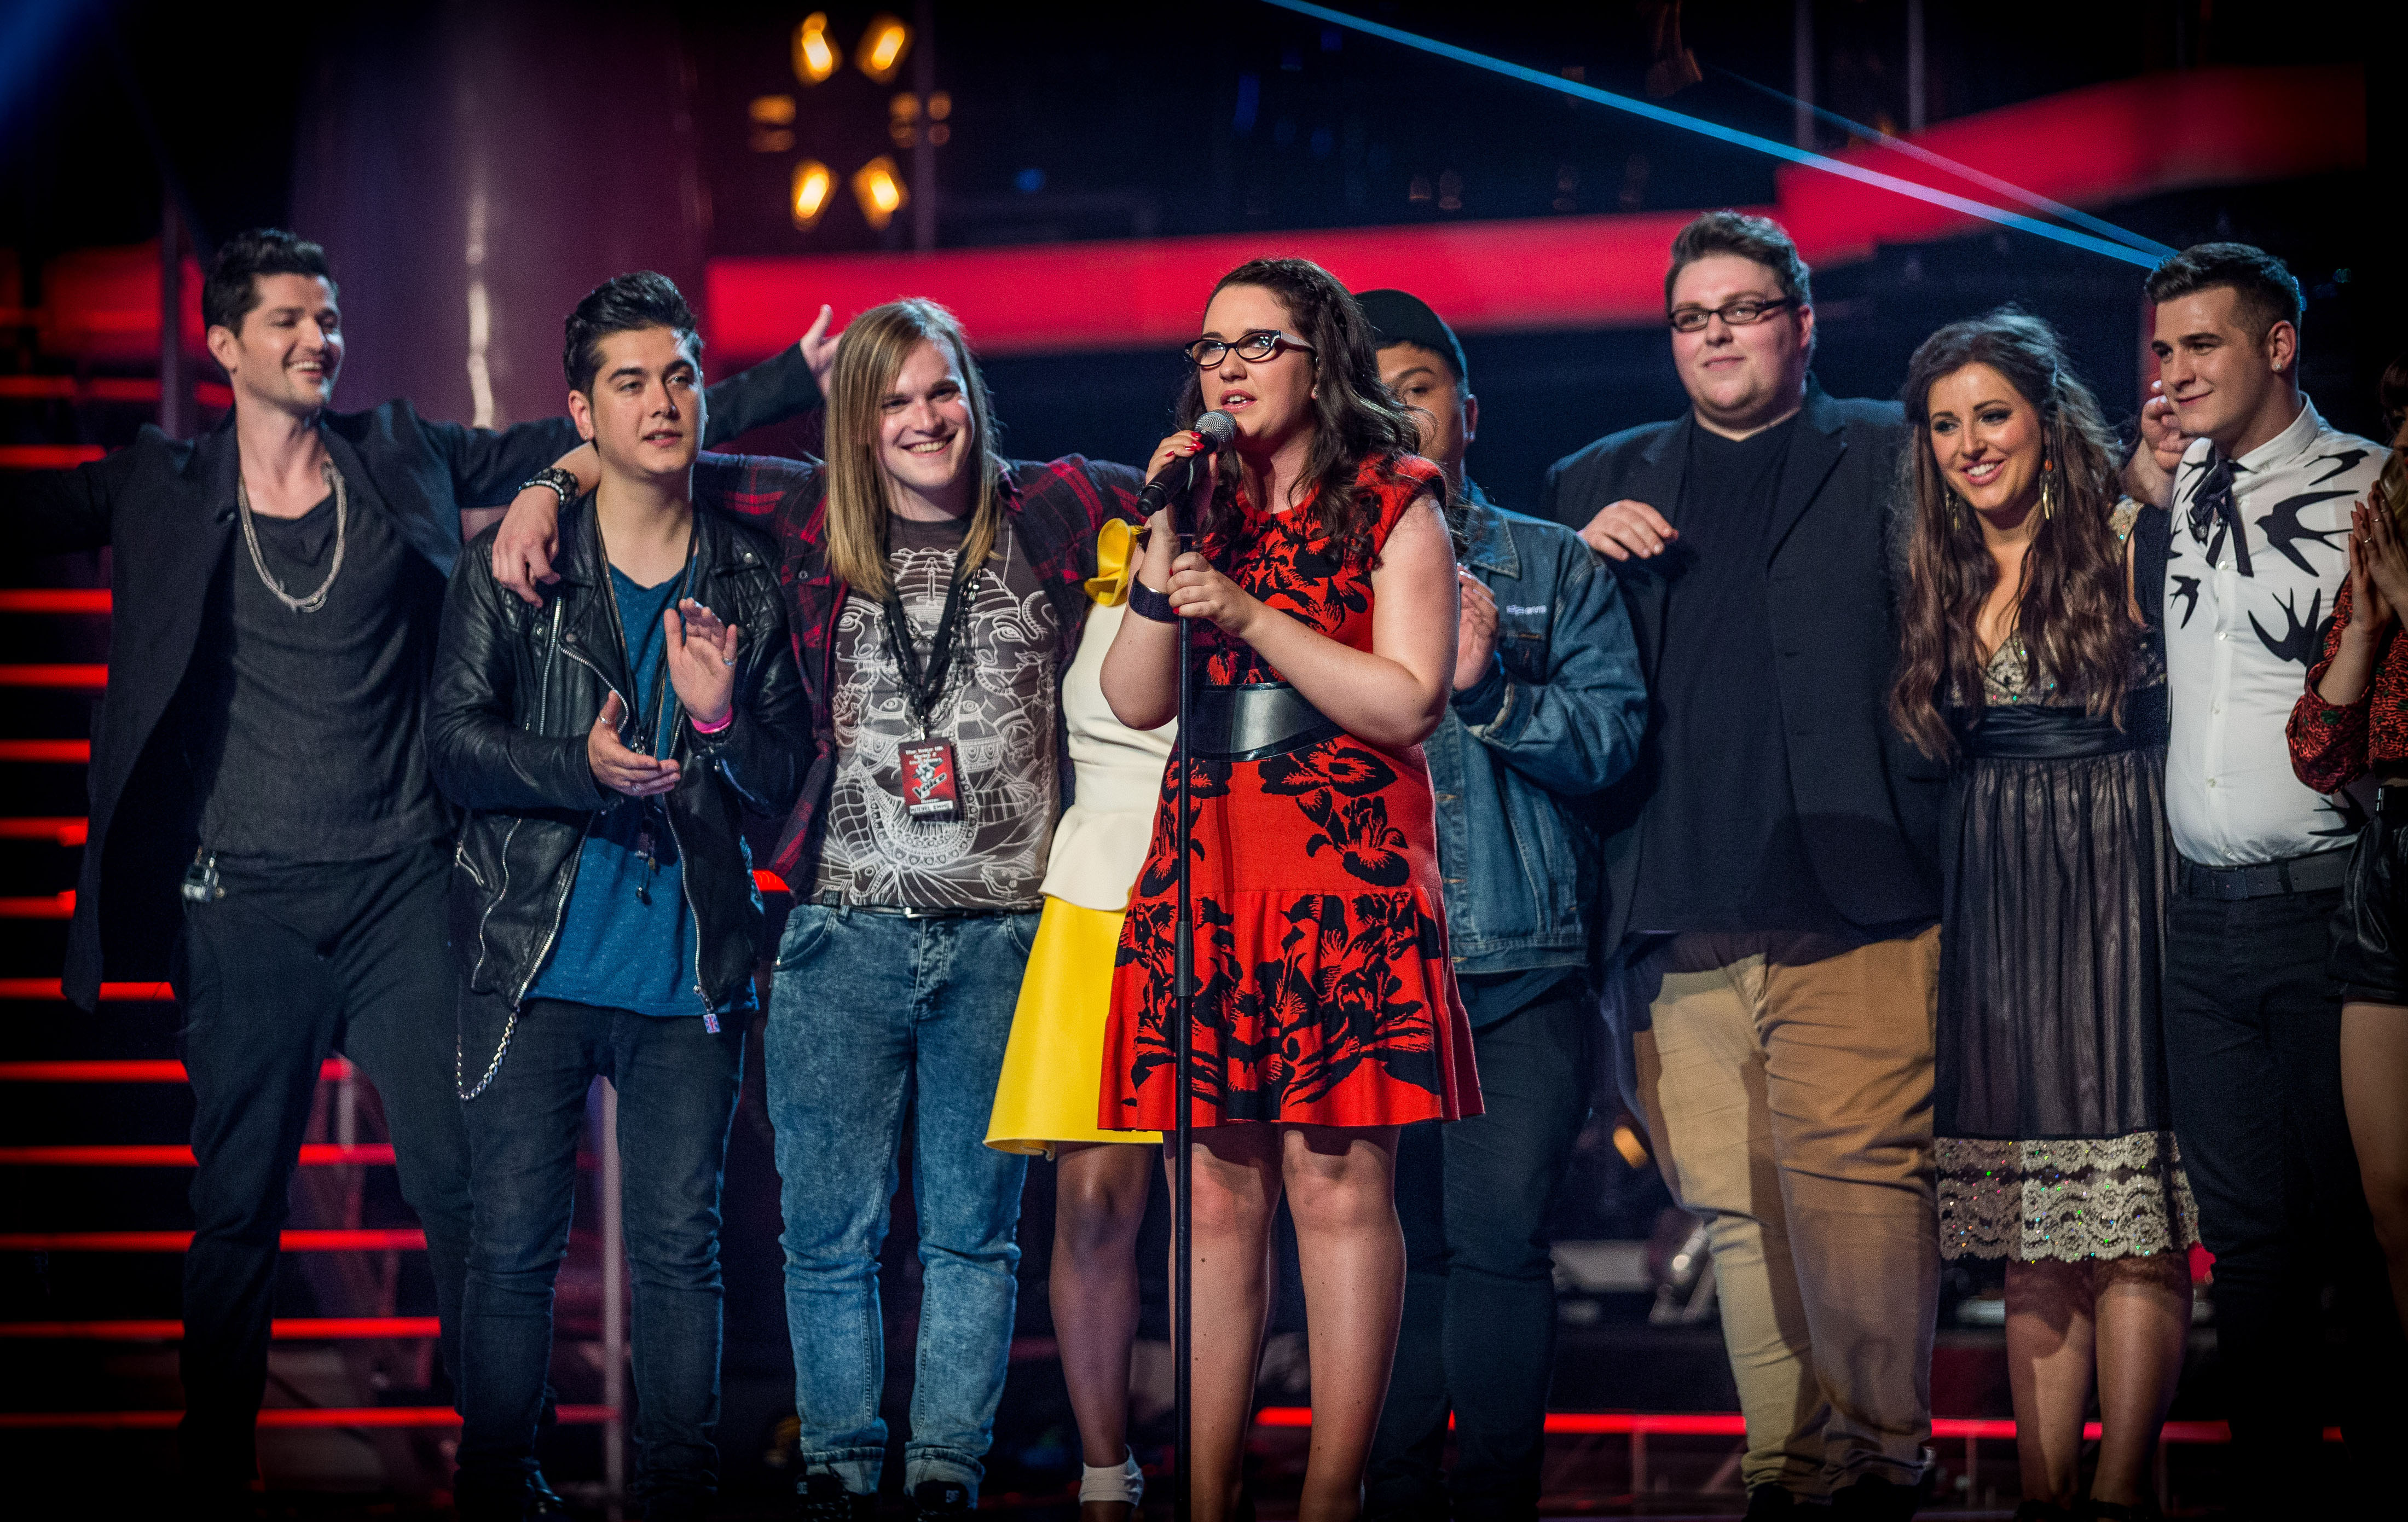 Andrea Begley tipped for No. 1 single after The Voice win